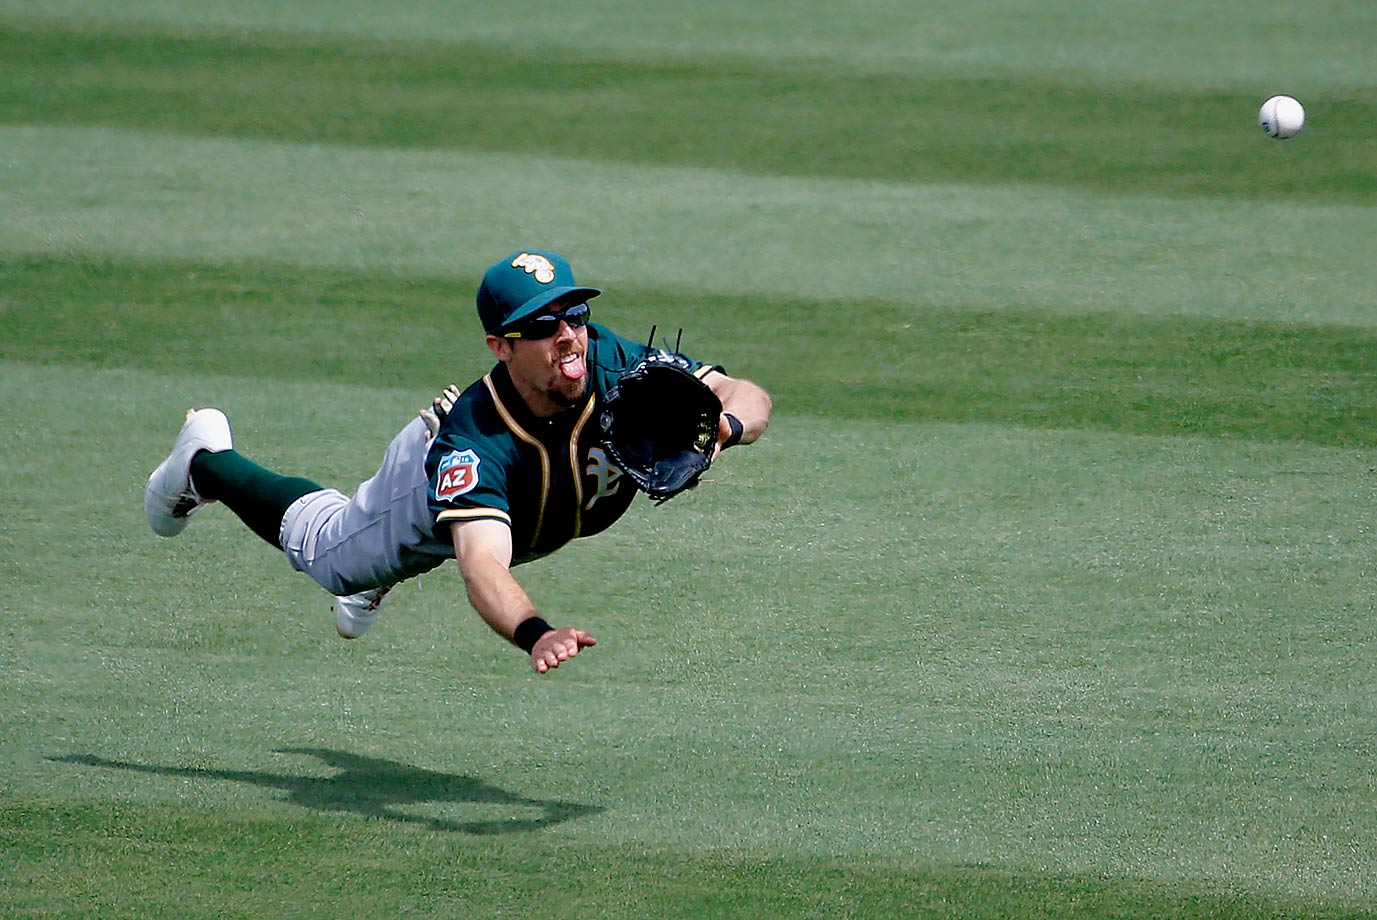 Oakland Athletics outfielder Billy Burns can't make the catch on a base hit during the second inning of a spring training game against the Chicago Cubs in Mesa, Ariz.